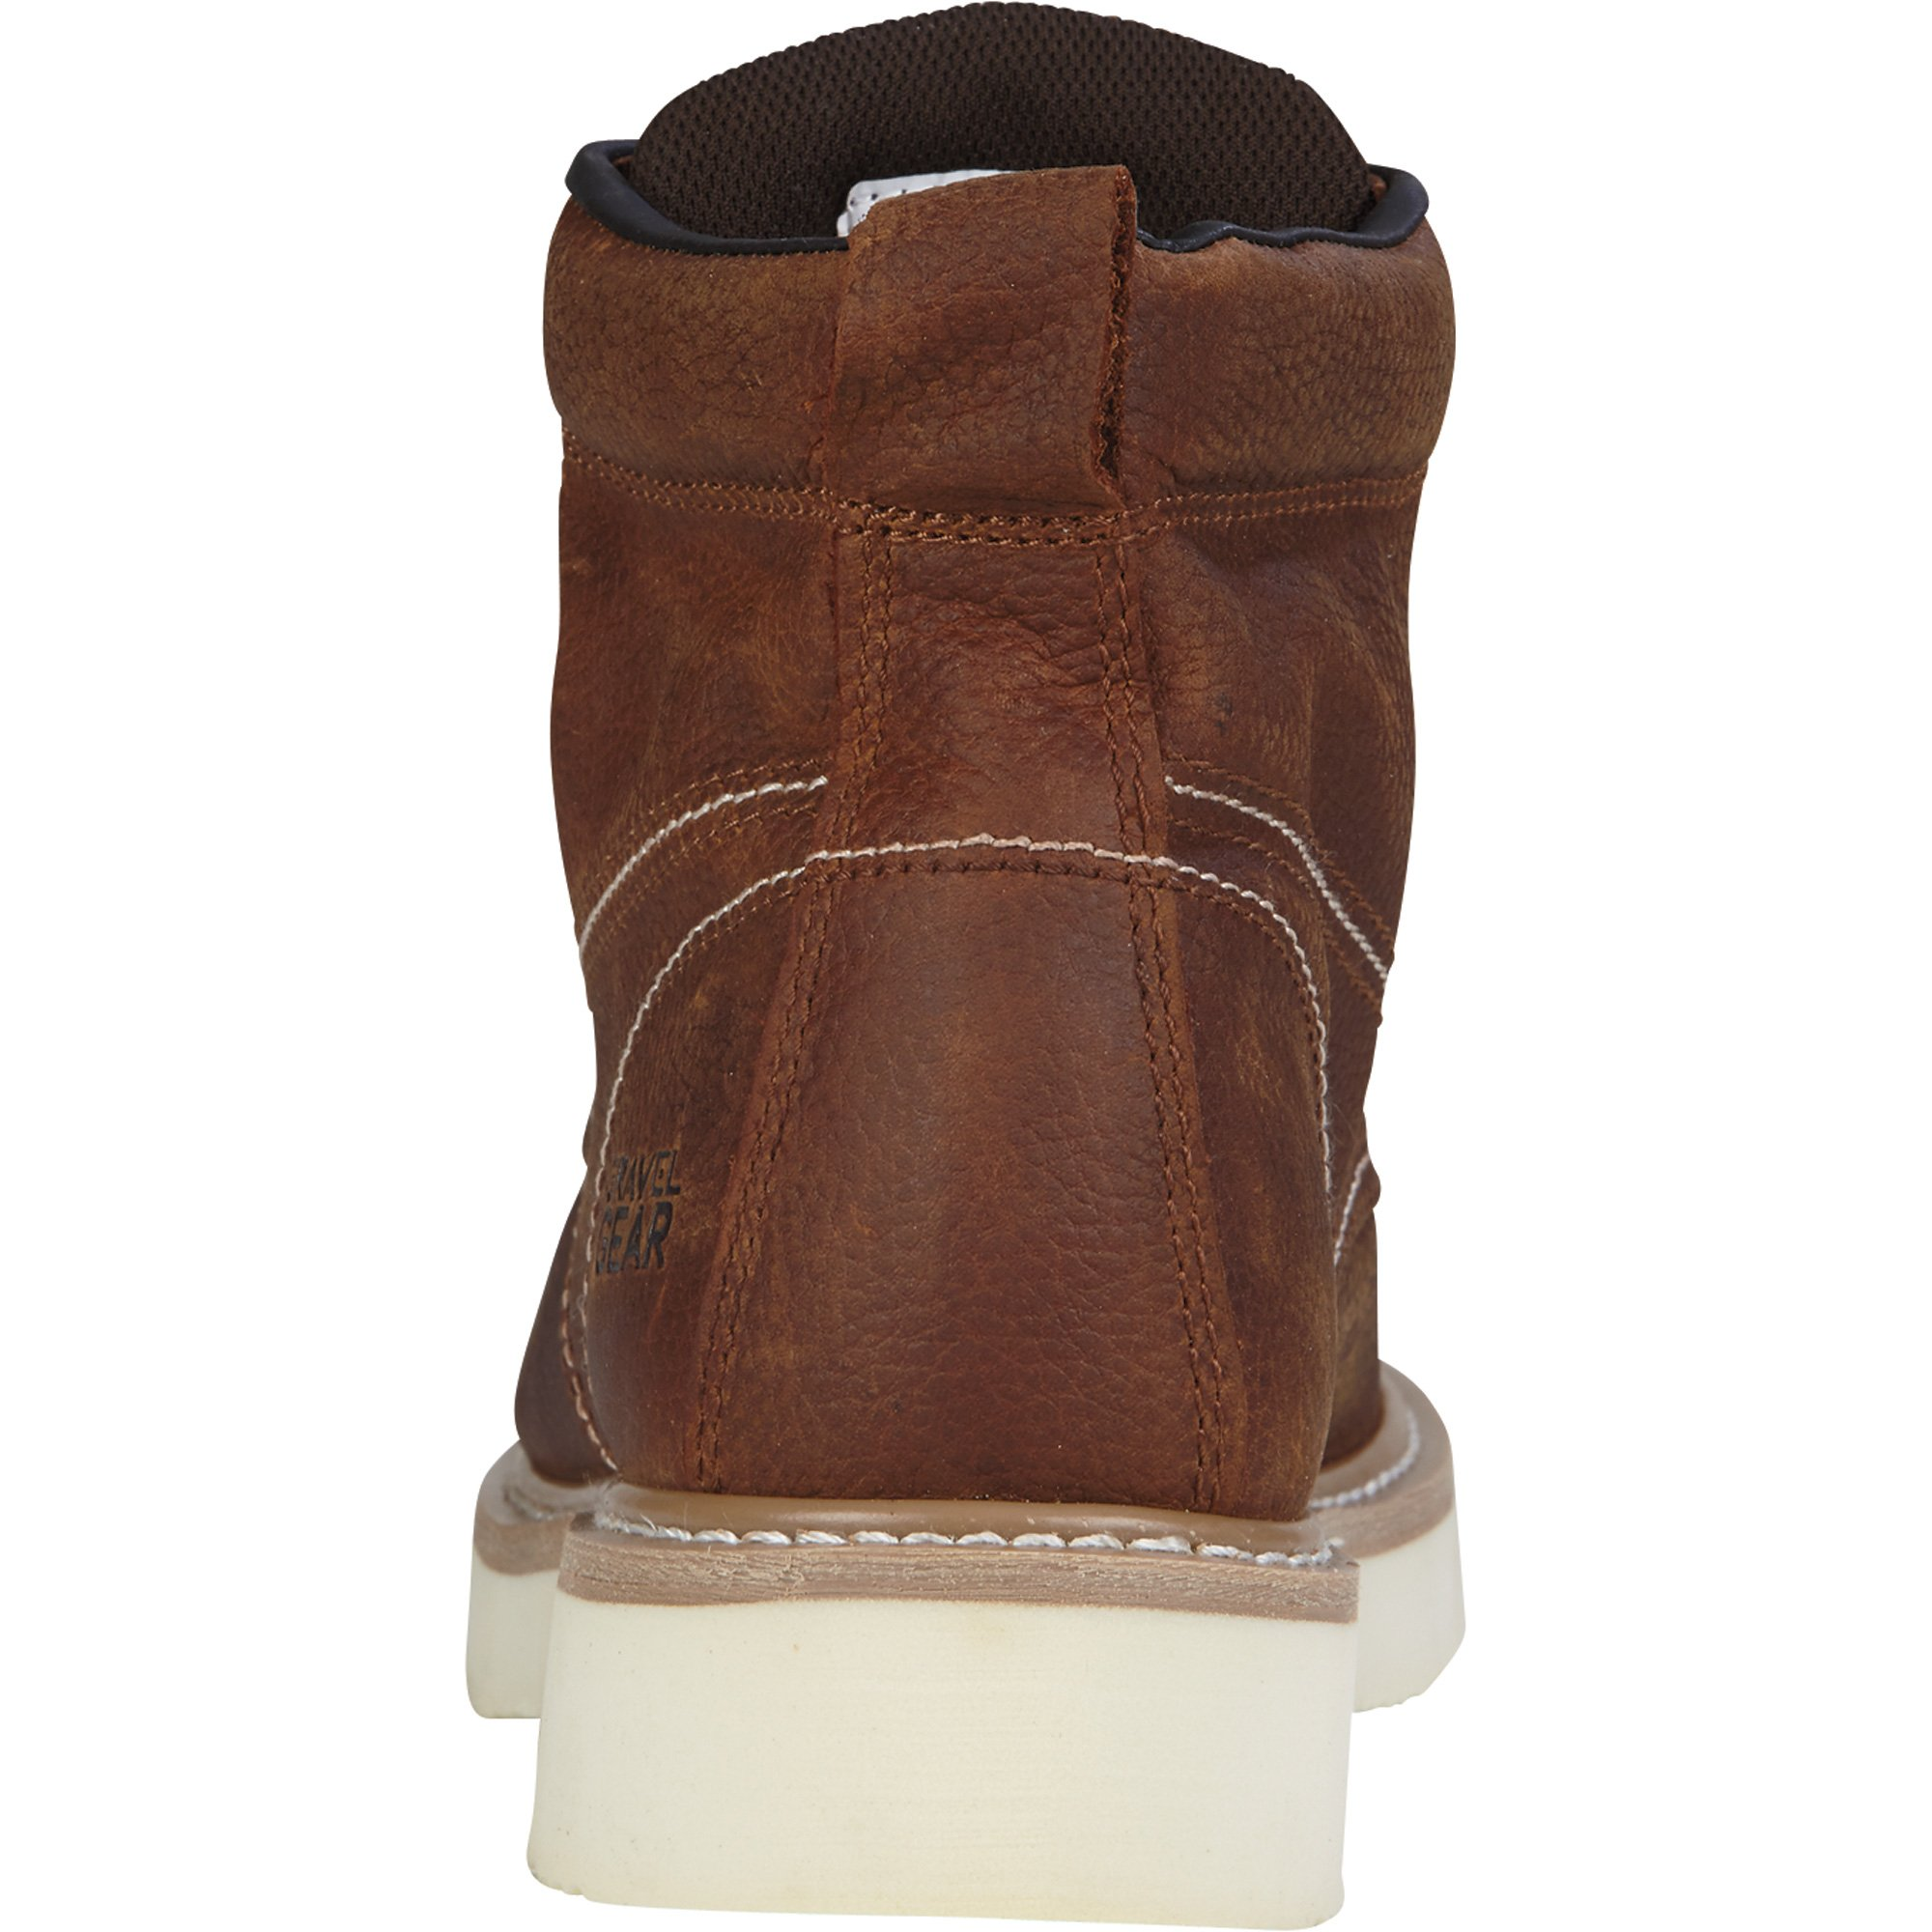 Gravel Gear 6in. Moc Toe Wedge Boot (10.5) by Gravel Gear (Image #5)